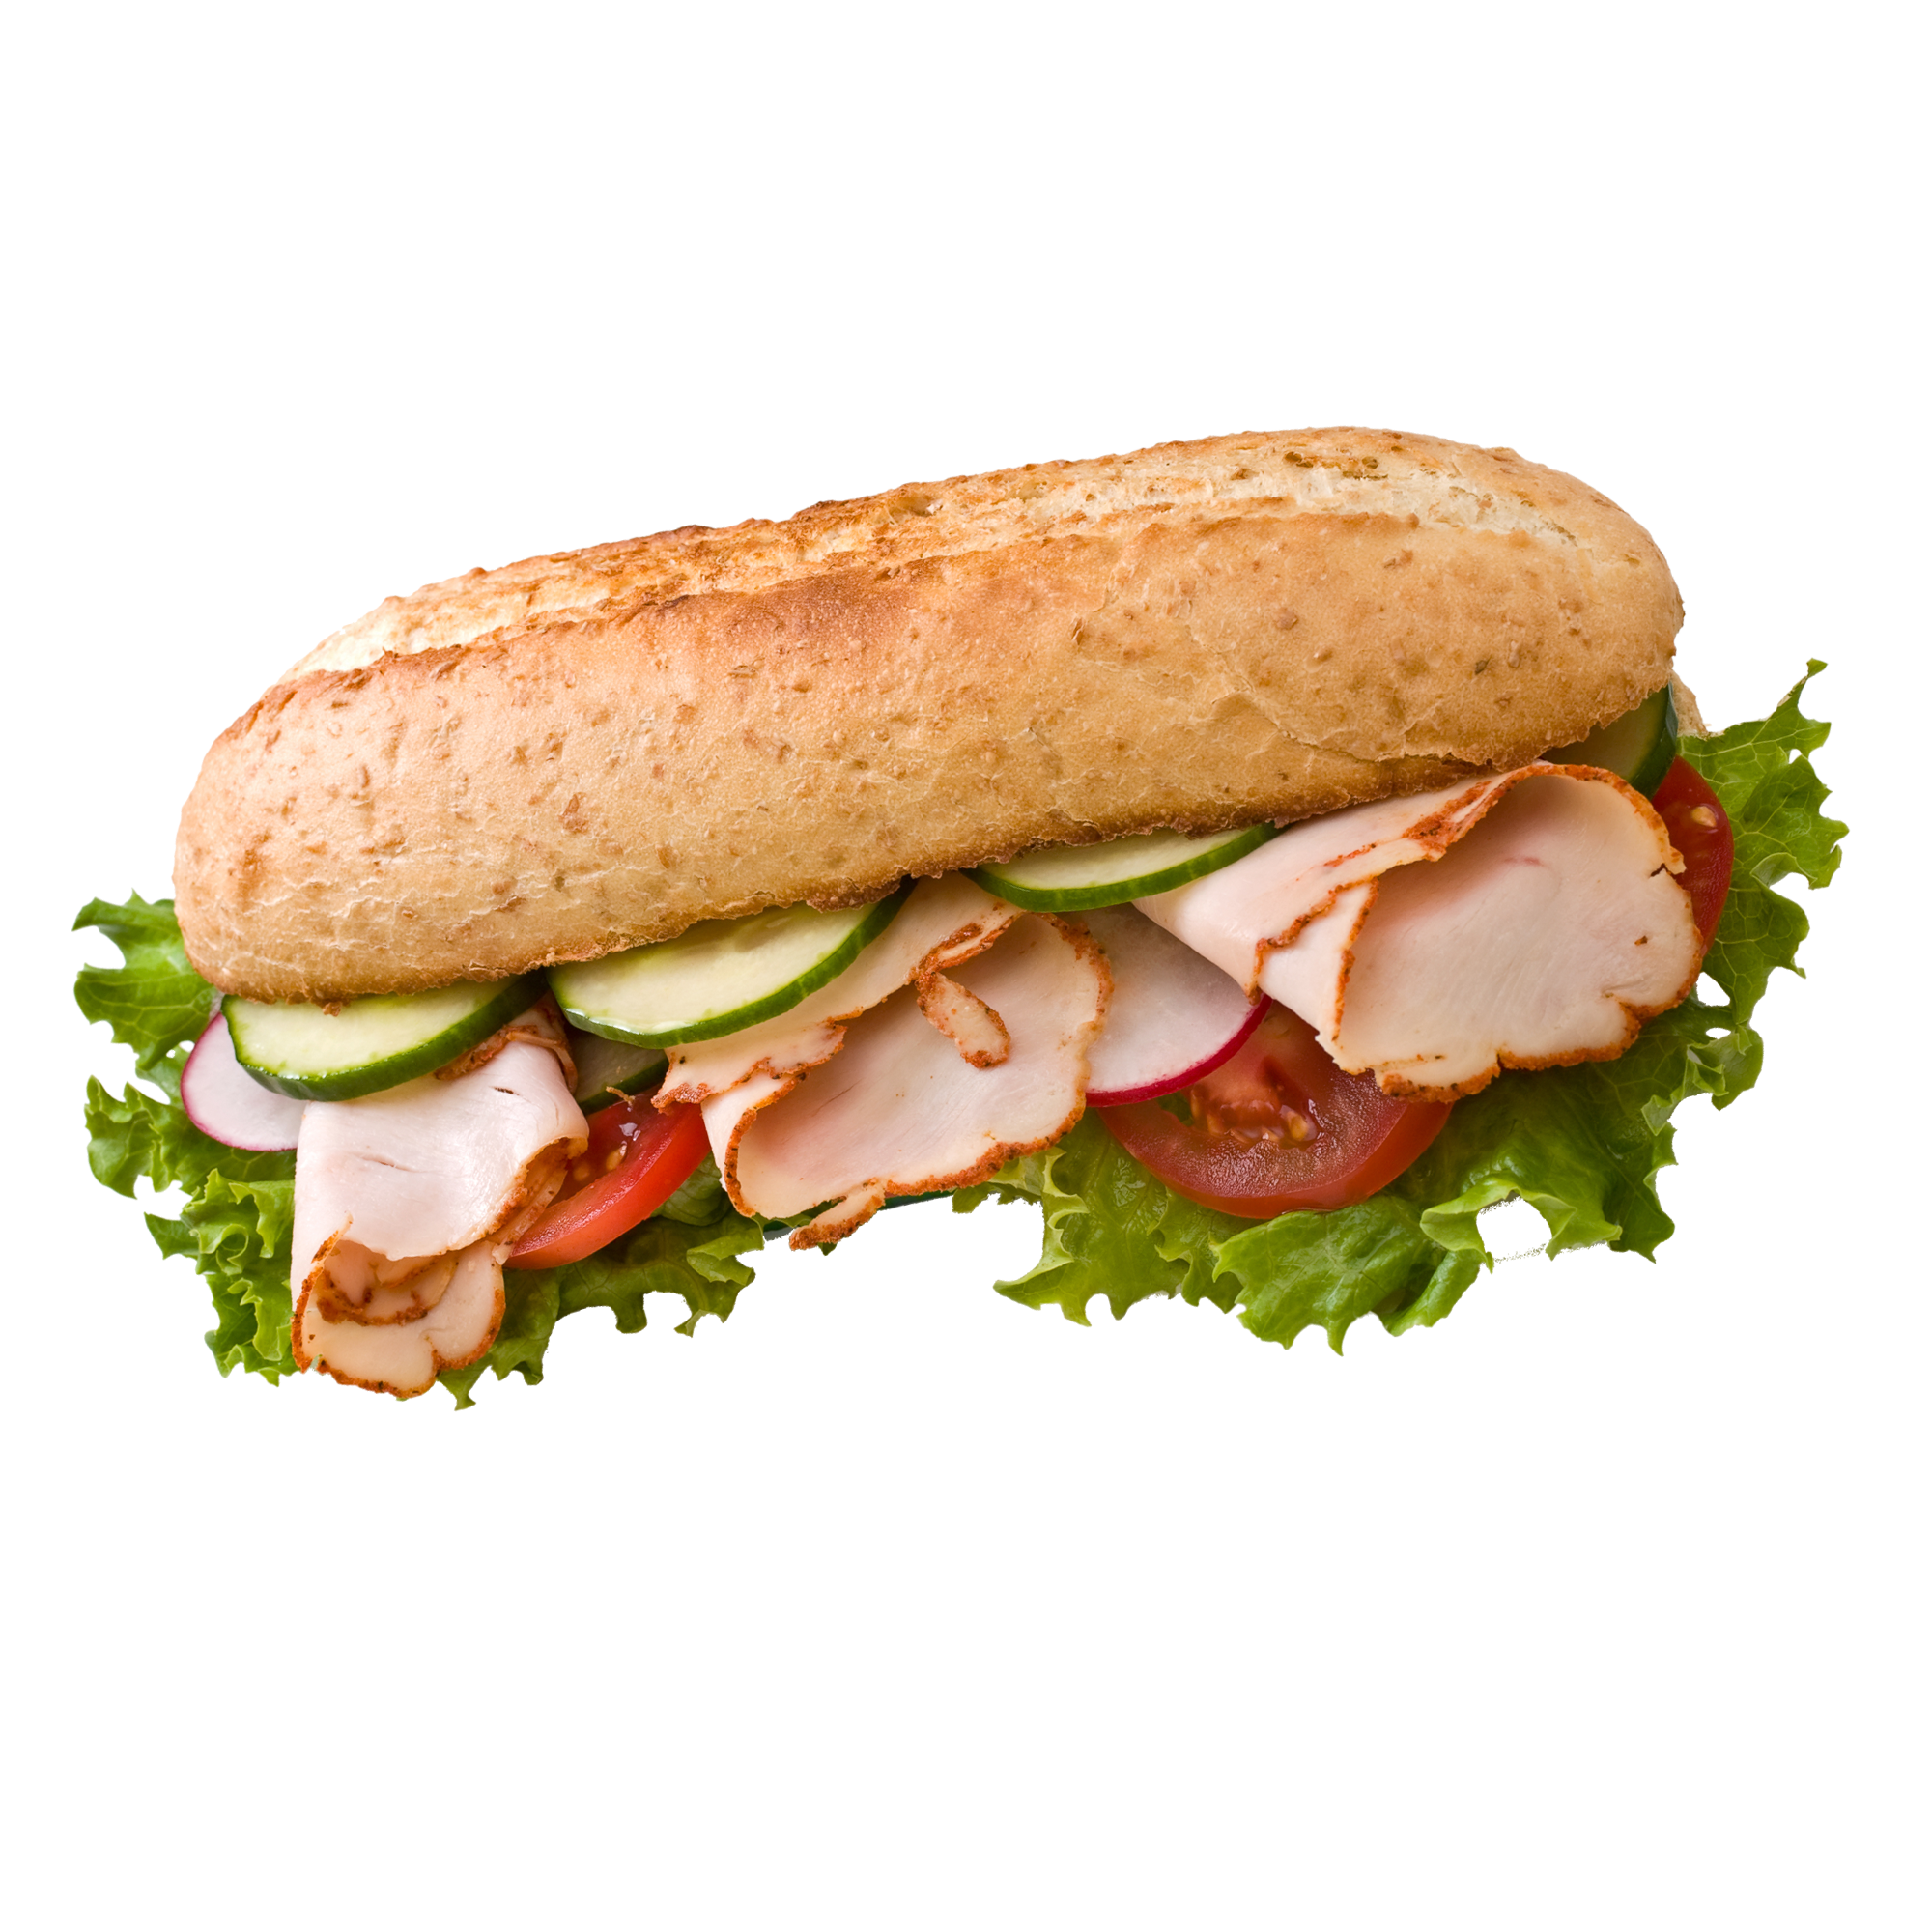 Blt baguette png. Hamburger ham and cheese